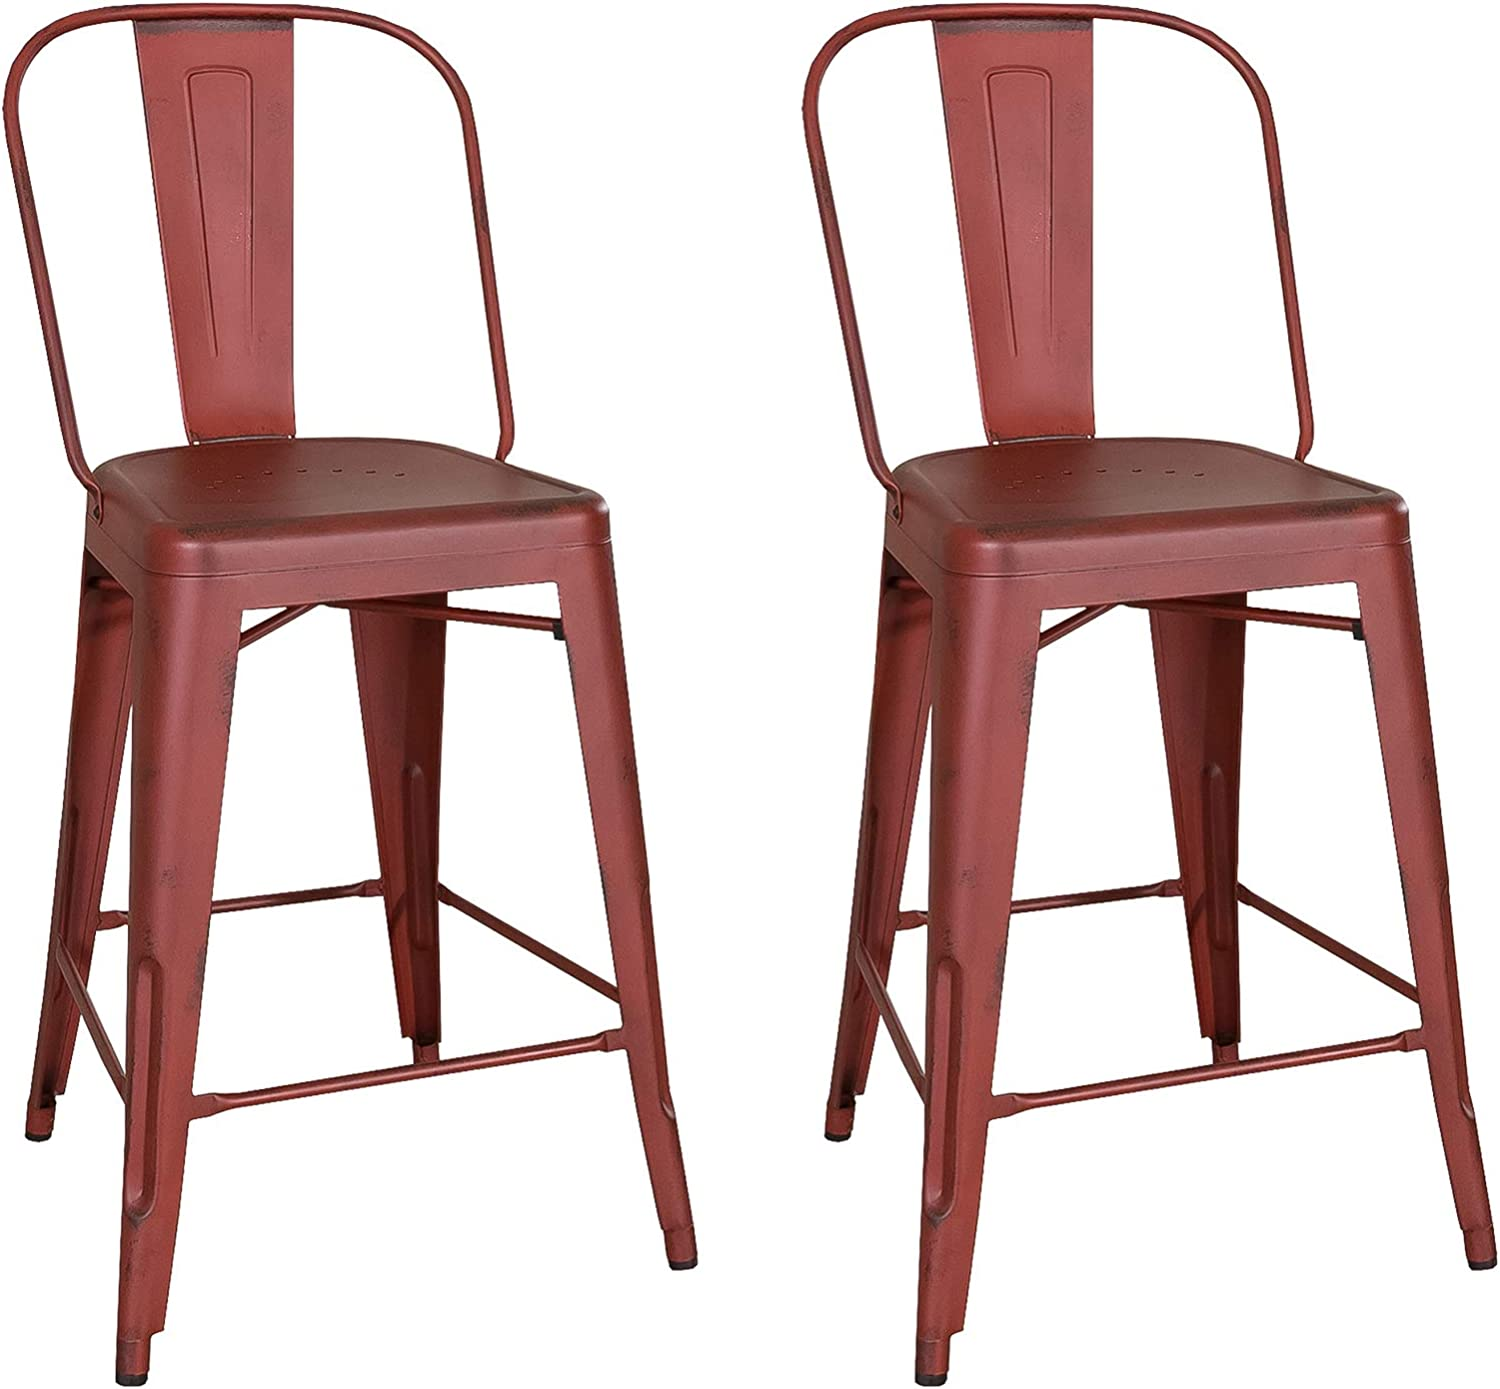 Liberty Furniture Industries Vintage Series (Set of 2) Bow Back Counter Chair, W21 x D22 x H43, Red